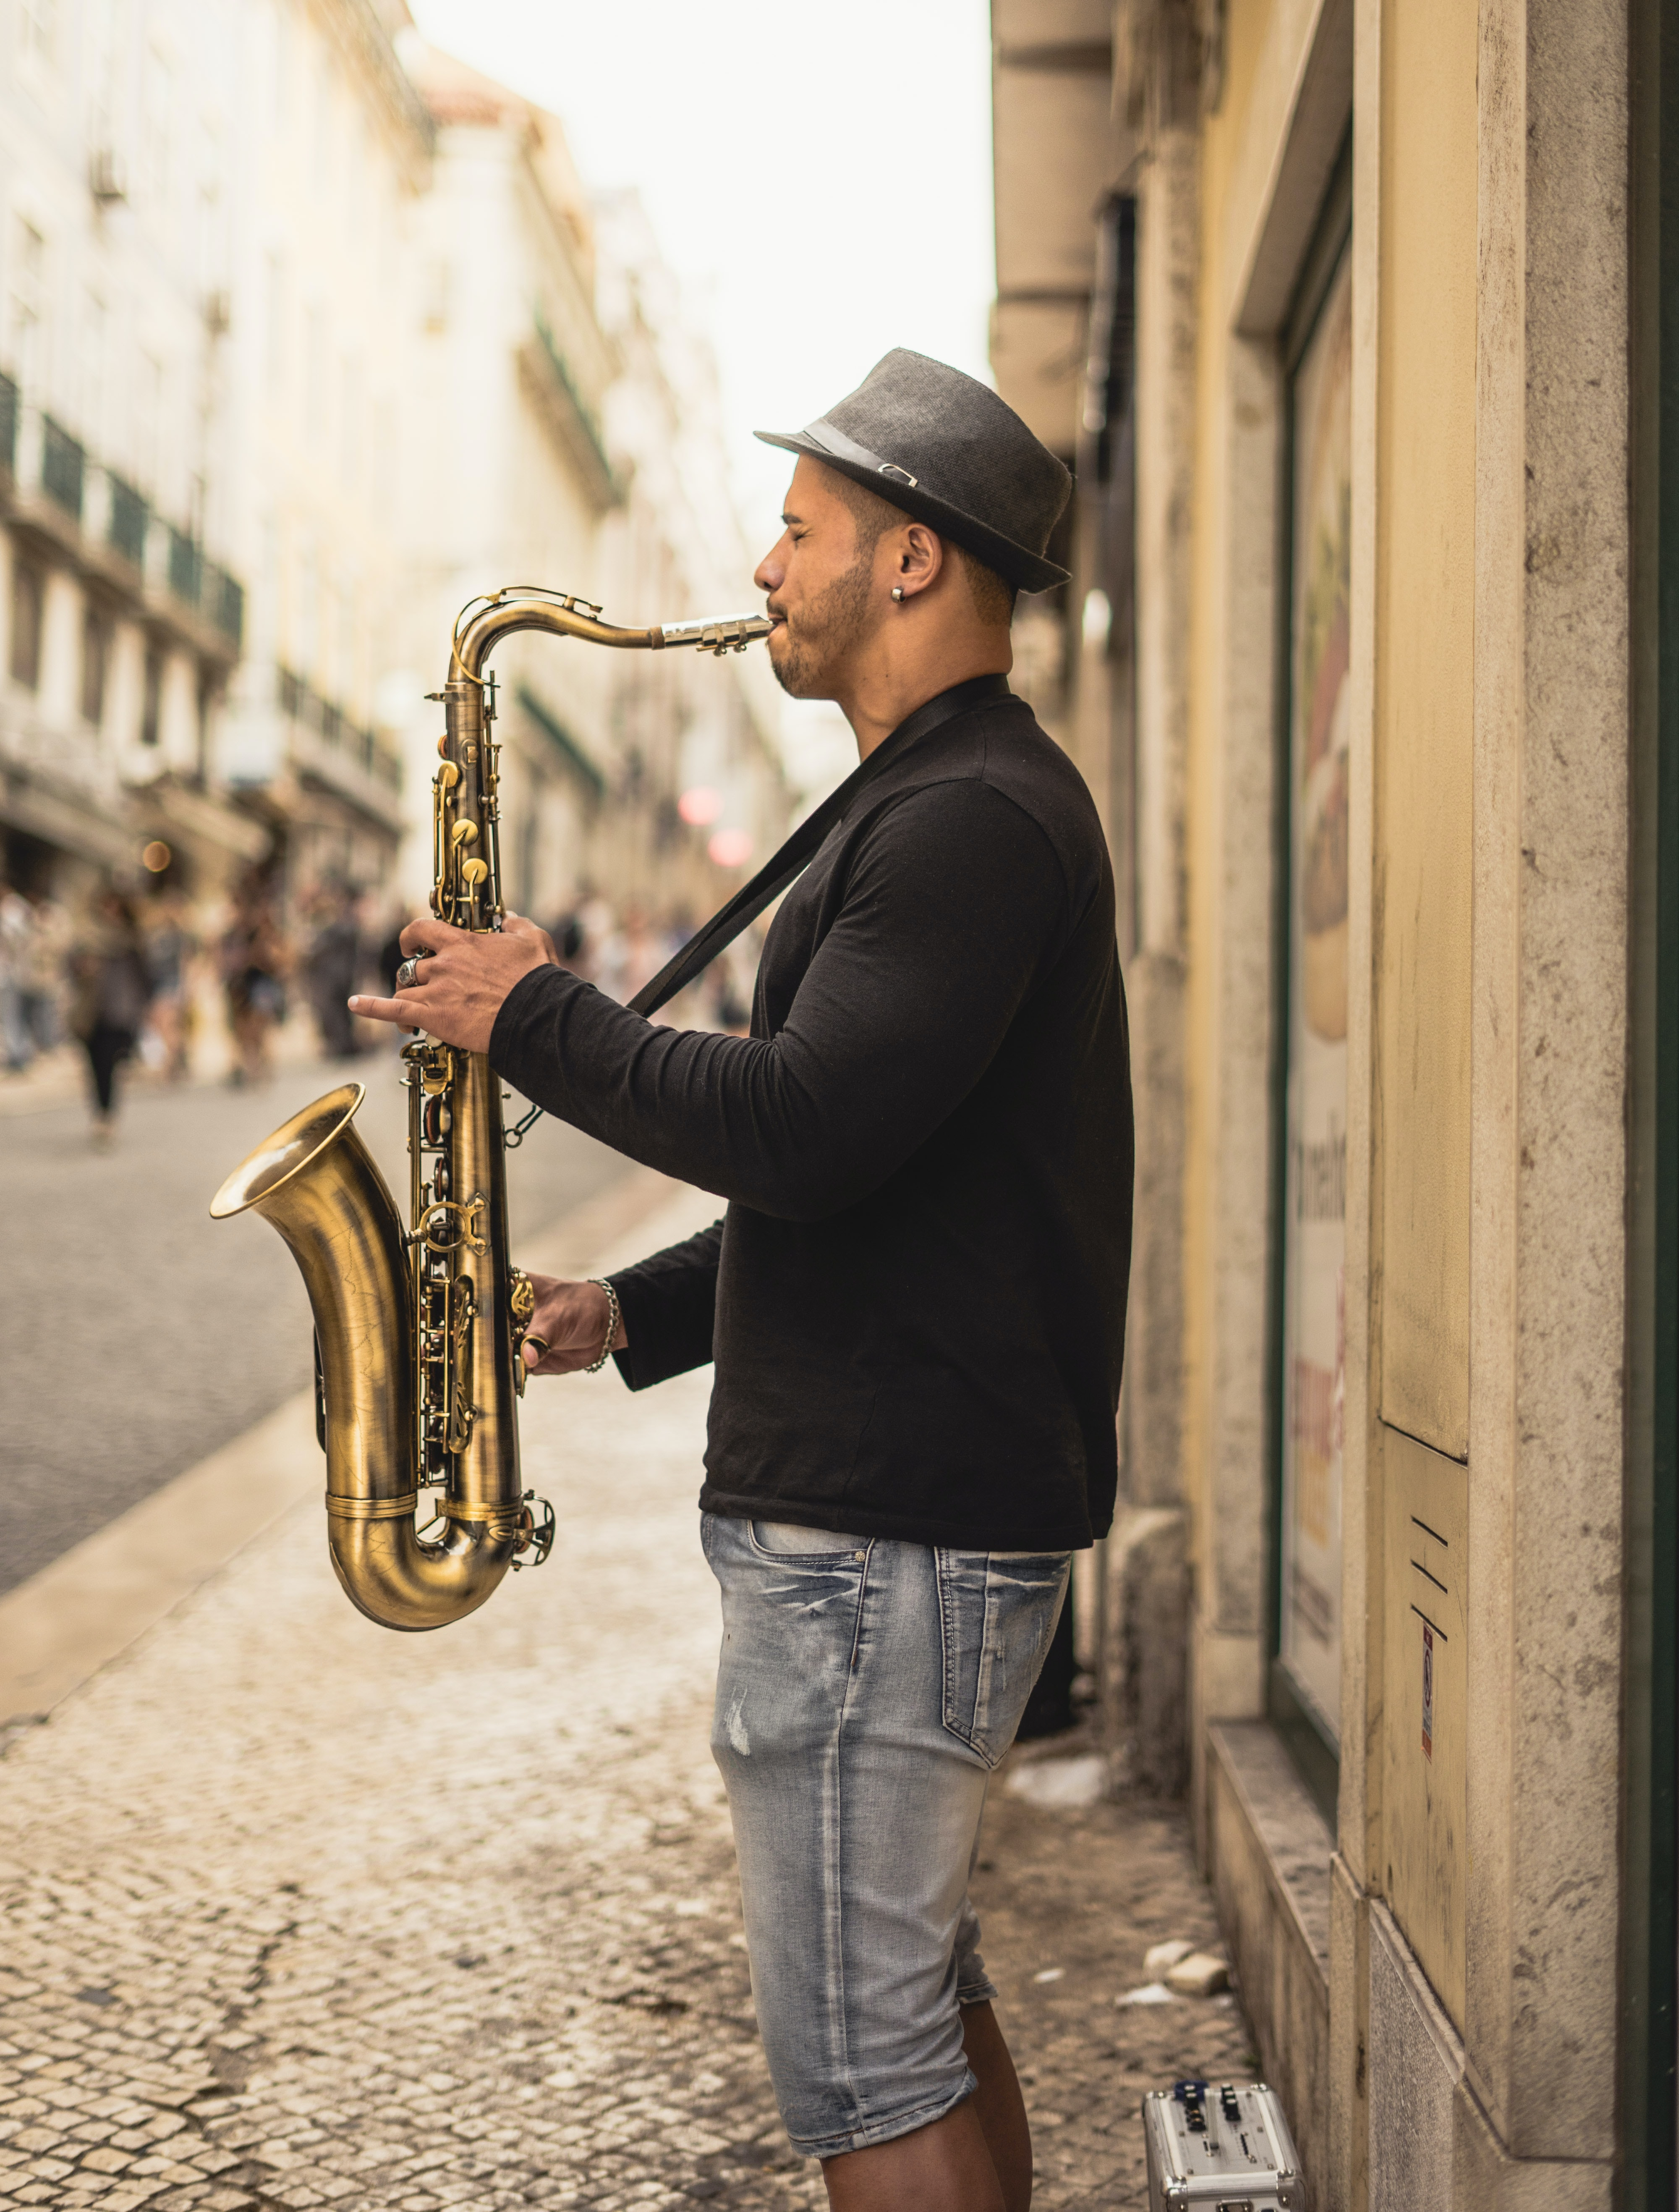 man playing copper-colored saxophone on street during daytime